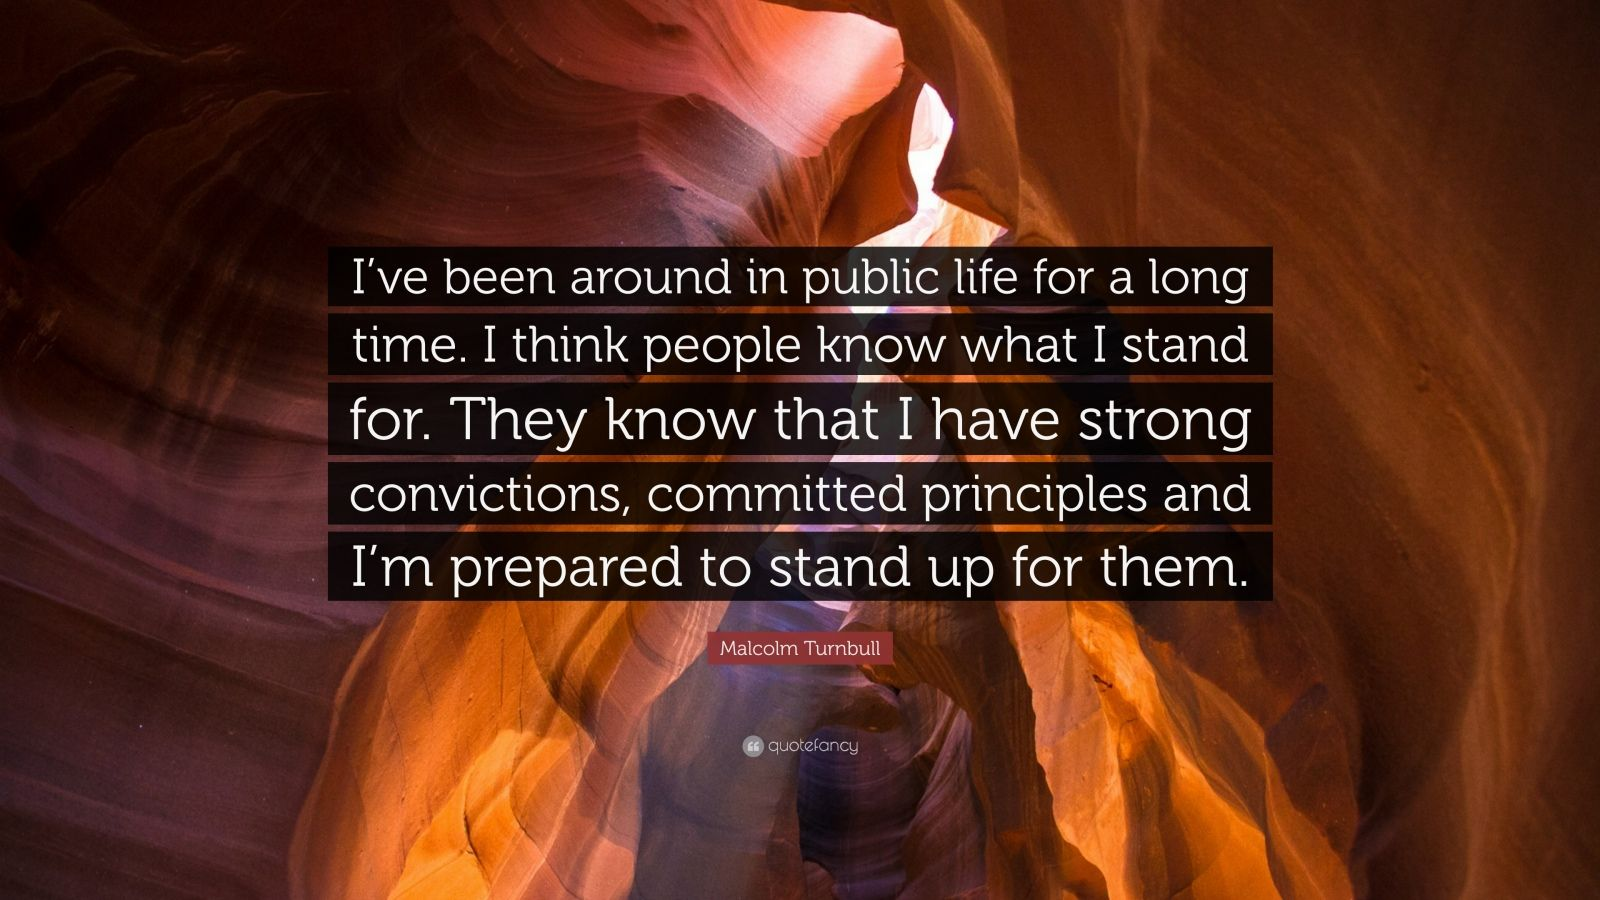 "Malcolm Turnbull Quote: ""I've been around in public life for a long time. I think people know what I stand for. They know that I have strong convictions, committed principles and I'm prepared to stand up for them."""